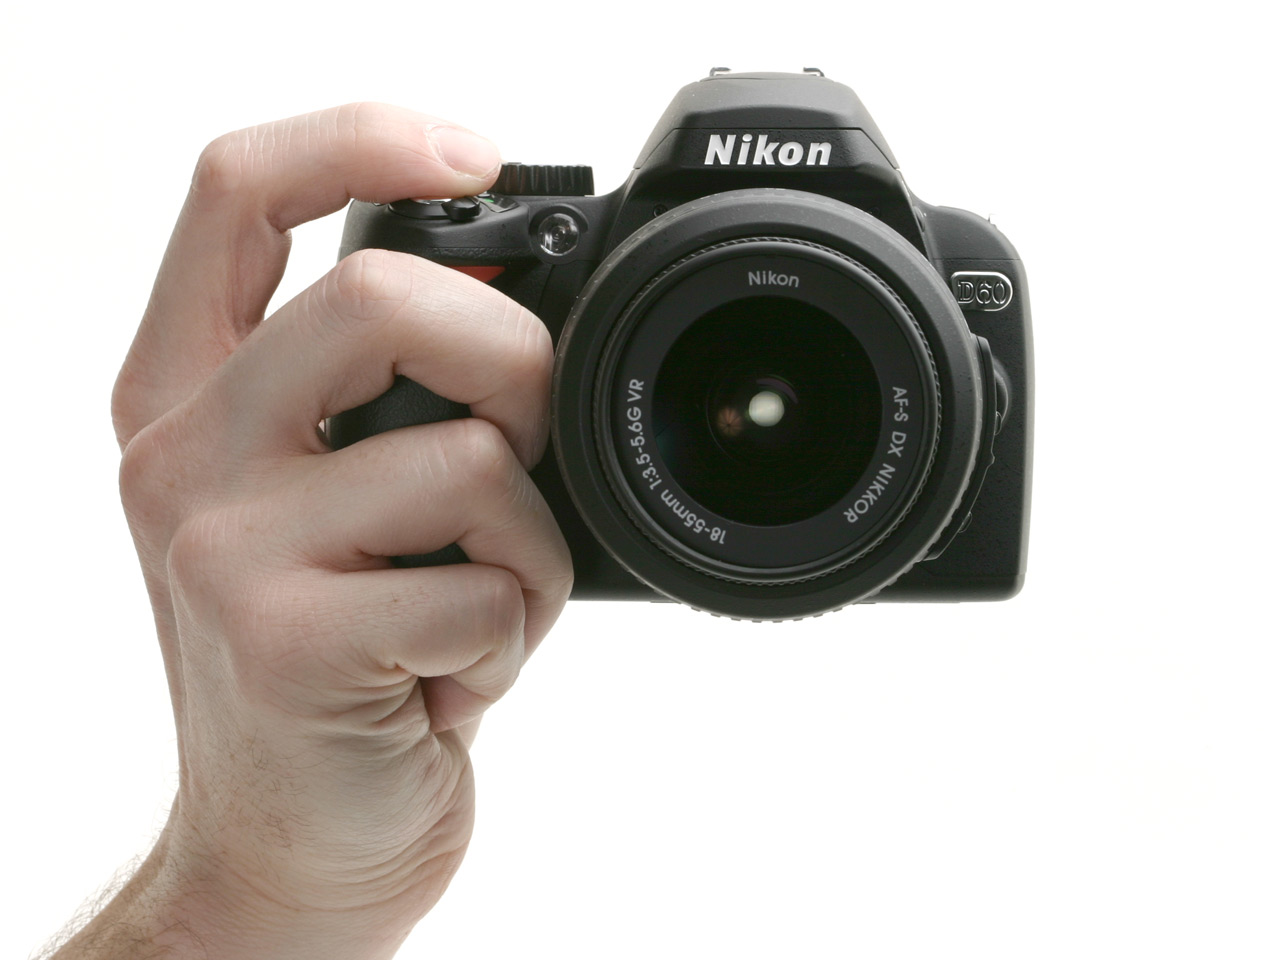 Nikon D60 brief hands-on: Digital Photography Review